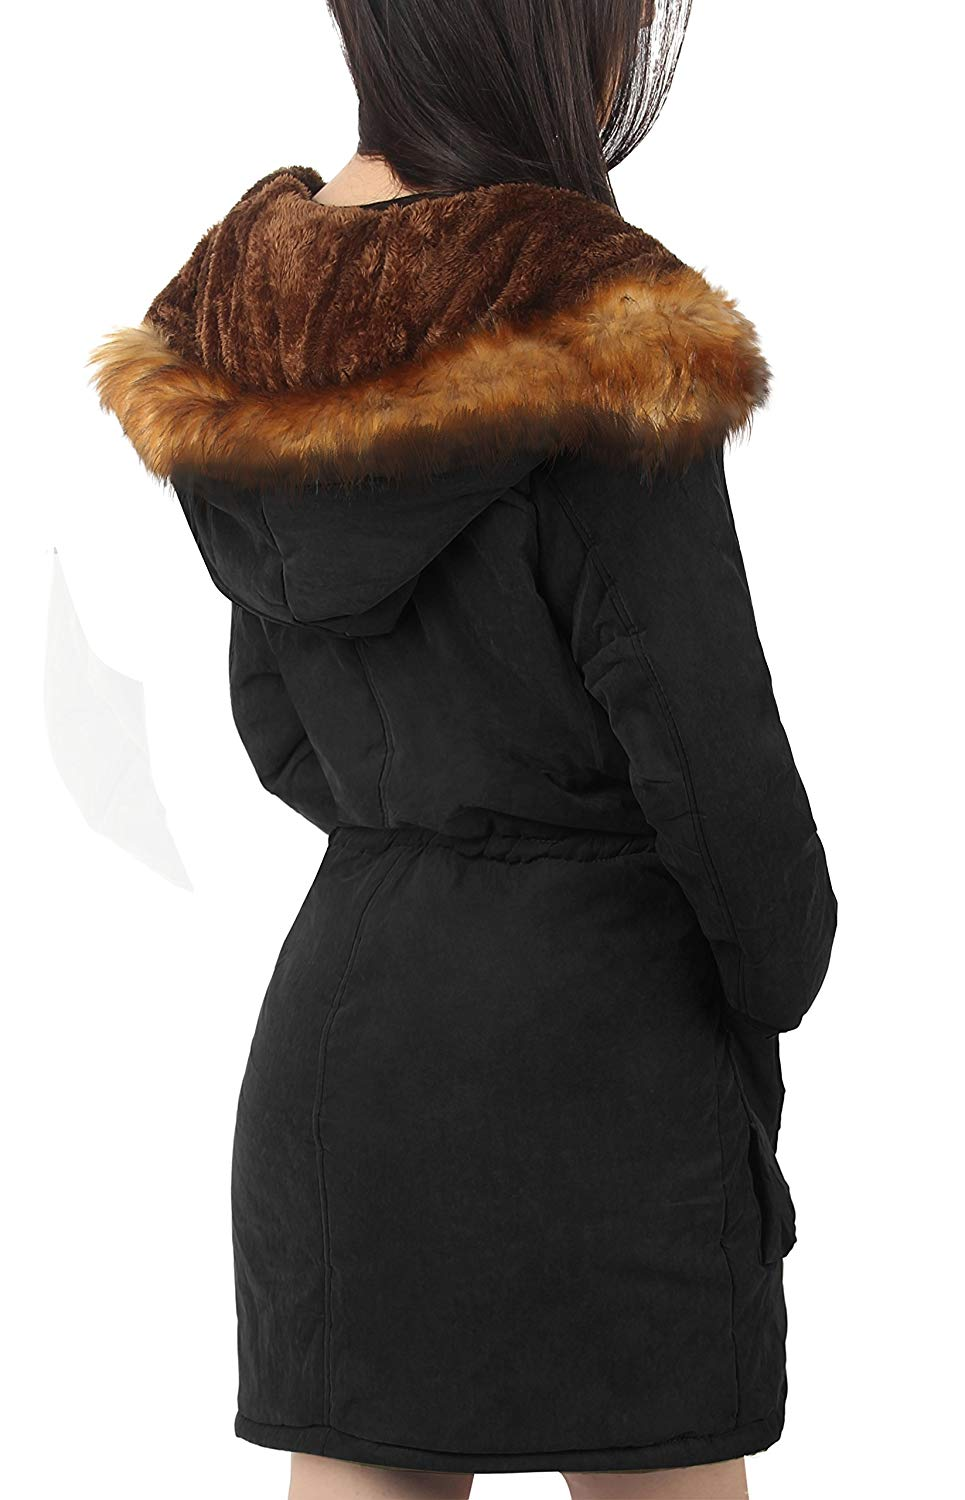 318a3ee2c51 ... iLoveSIA Womens Hooded Warm Coats Parkas with Faux Fur Jackets ...